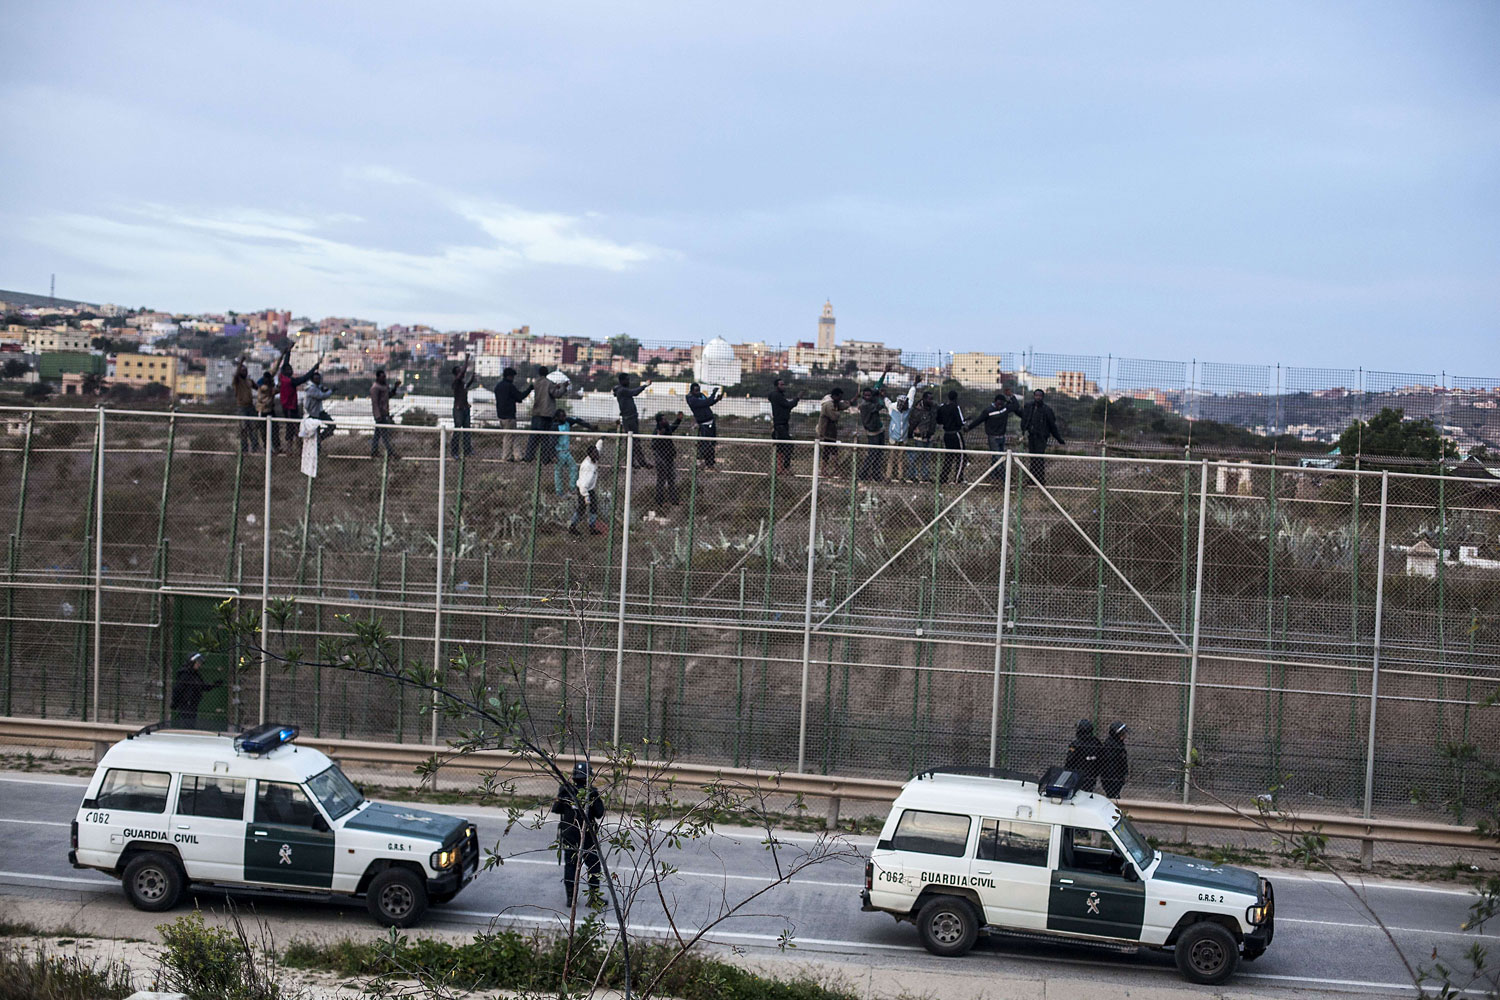 Spanish policemen watch would-be immigrants reacting between two fences near Beni Enza, into the north African Spanish enclave of Melilla on March 28, 2014.